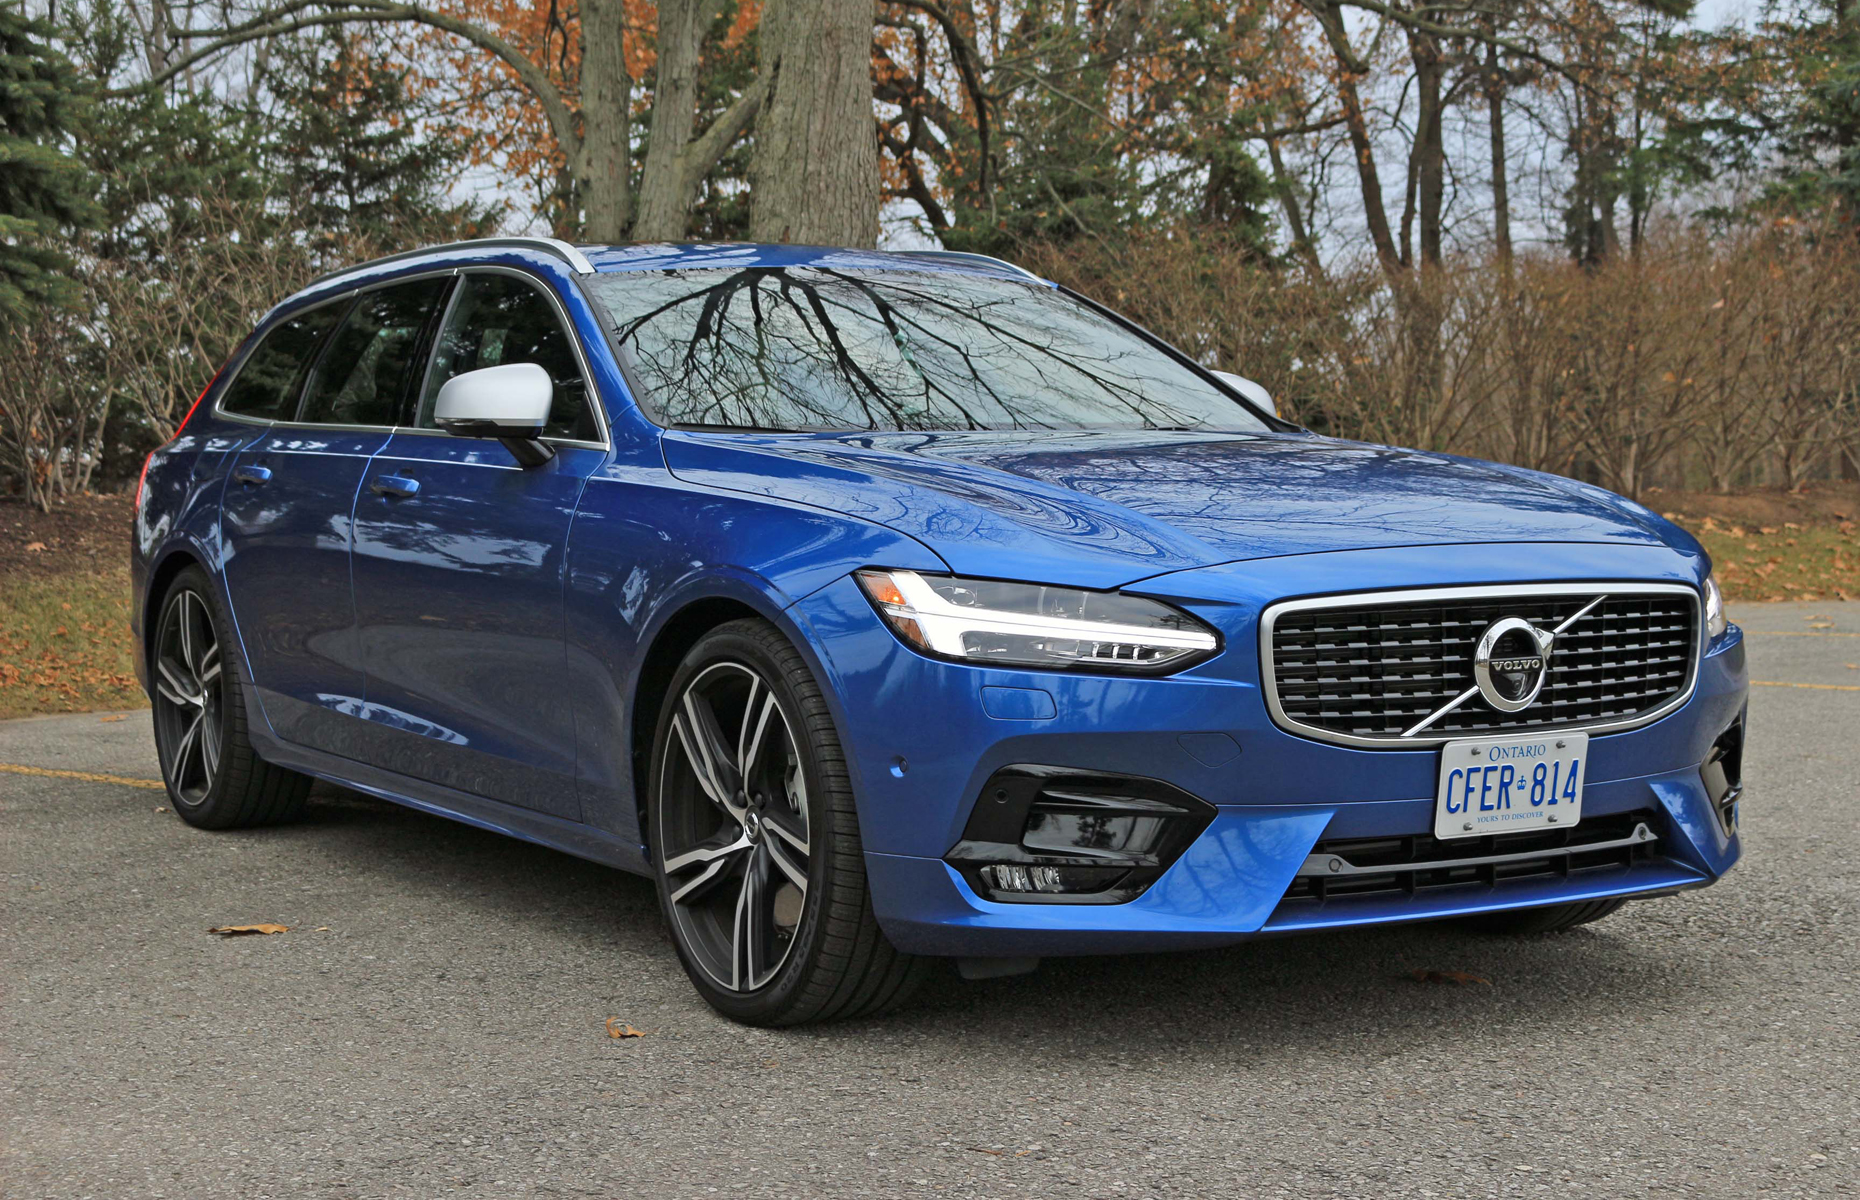 48 A Volvo S90 2020 Facelift 2 Price